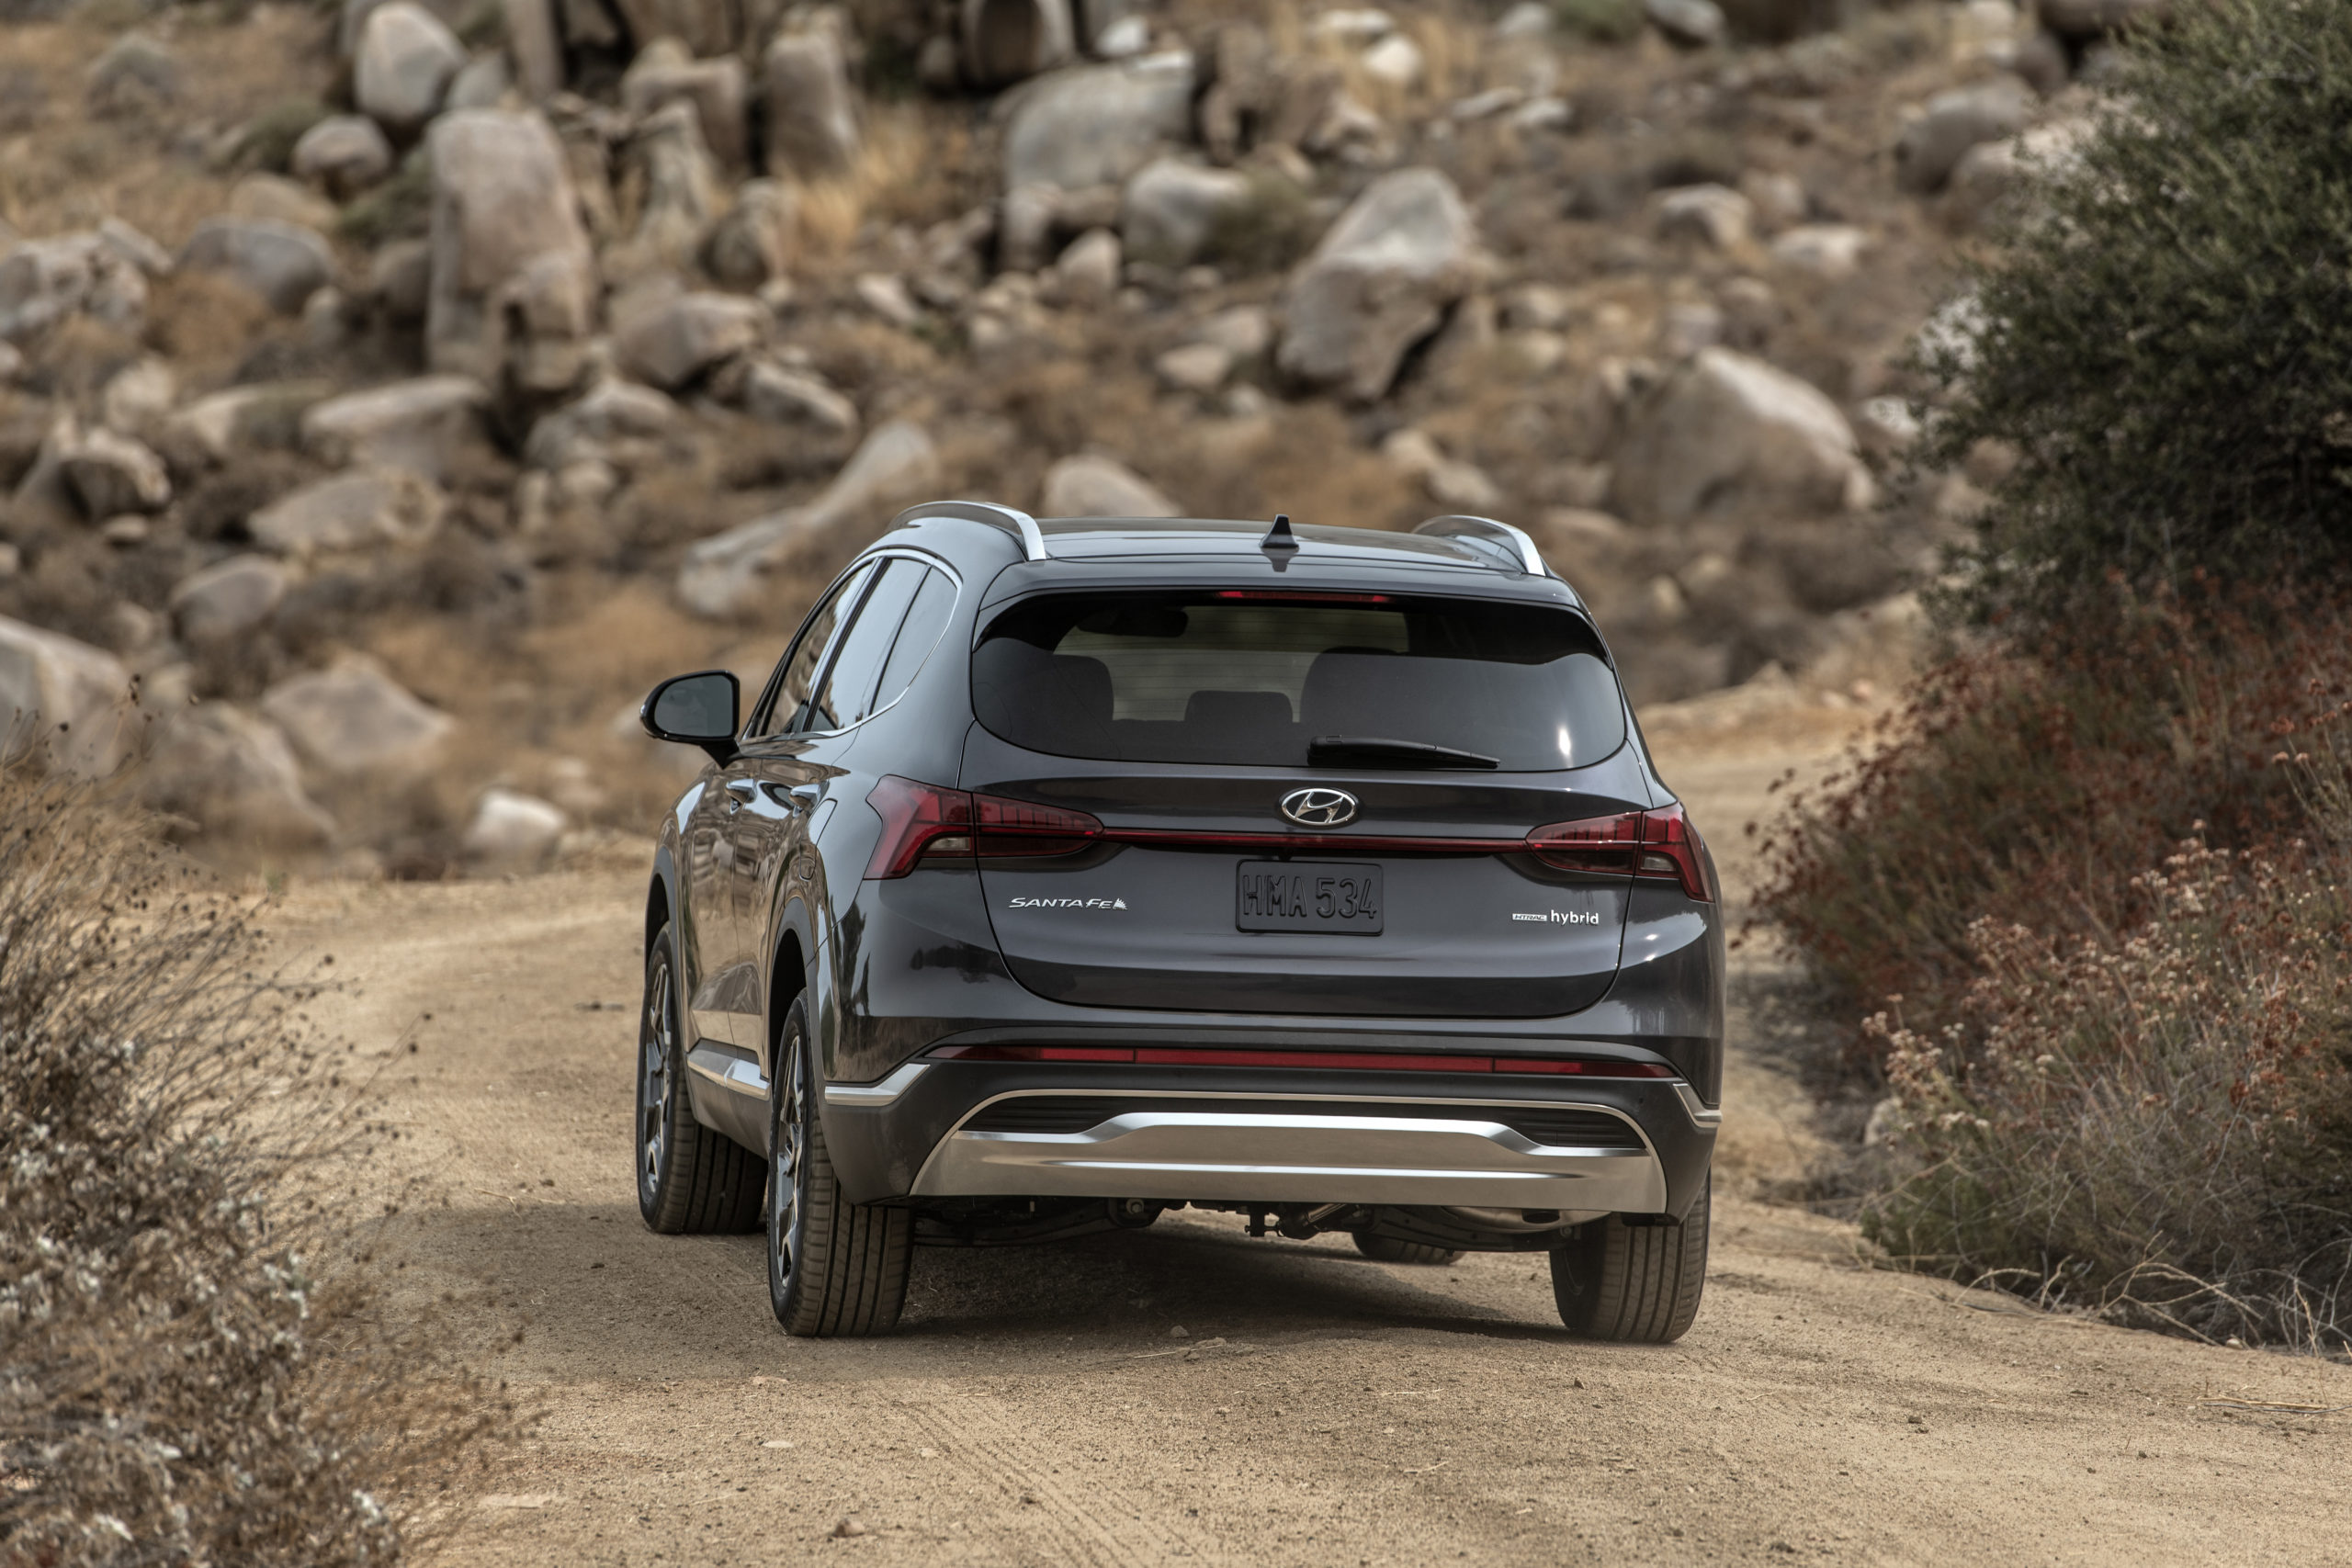 2021 Hyundai Santa Fe refresh changes steel, underbody ...